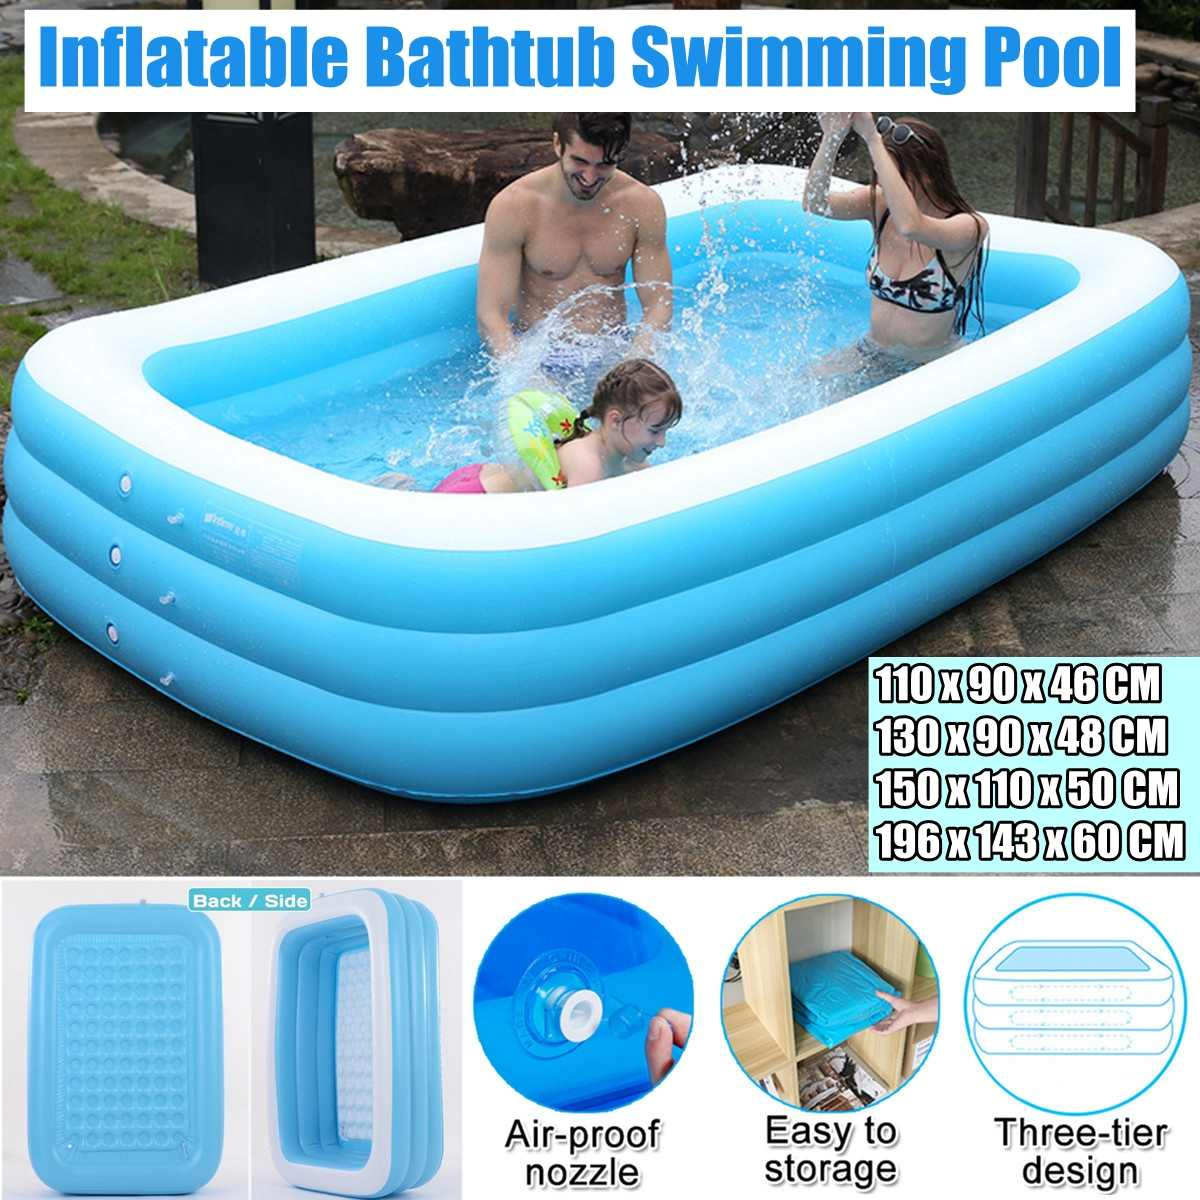 110cm-305cm Thicken Inflatable Swimming Pool Adults Kids Pool Bathing Tub  Outdoor Indoor Swimming Pool nflatable bathtub